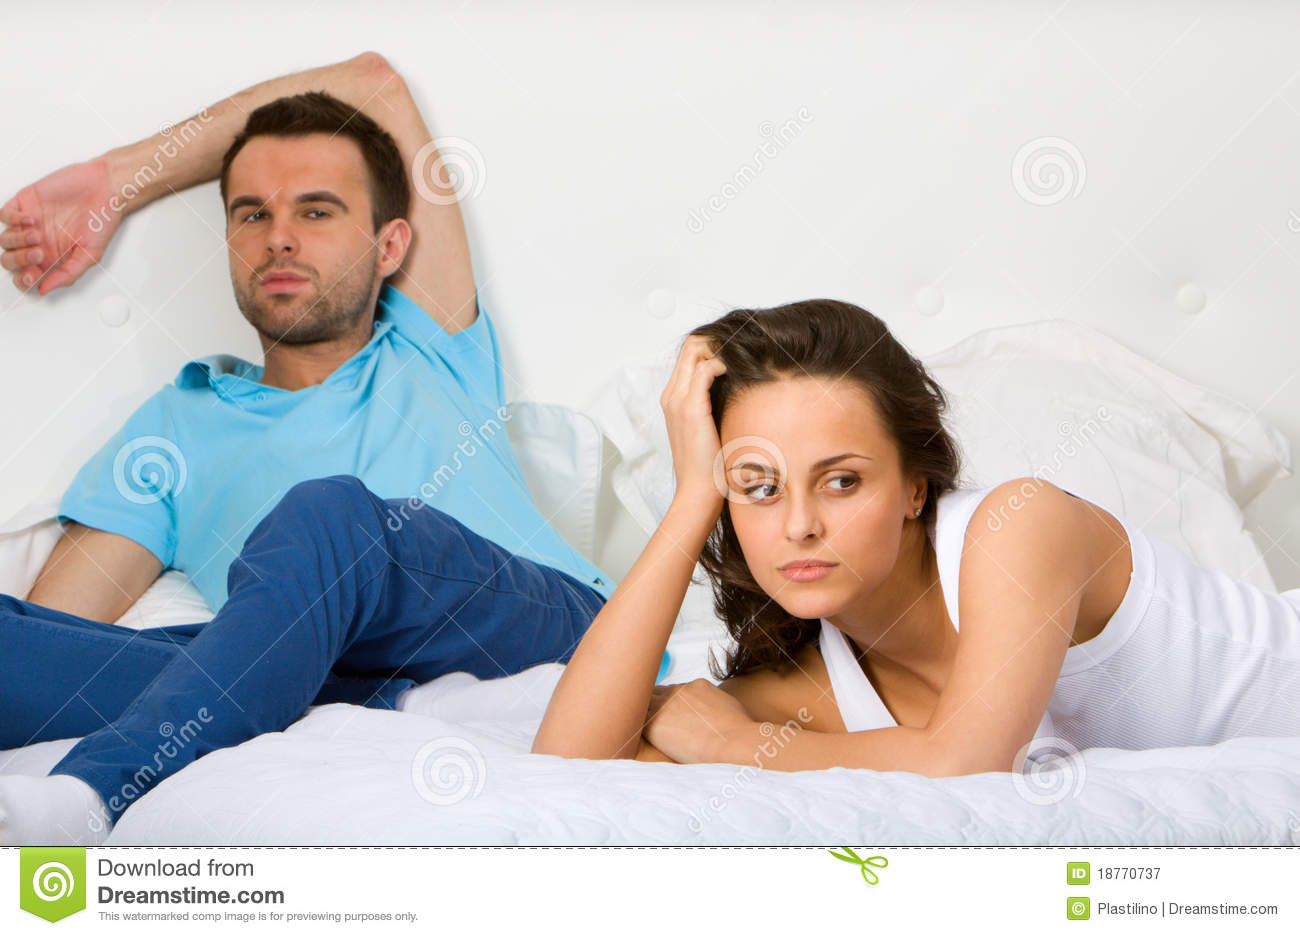 conflicts in romantic relationships Conflicts are critical events that can weaken or strengthen a relationship  conflicts can be productive, creating deeper understanding, closeness and  respect,.